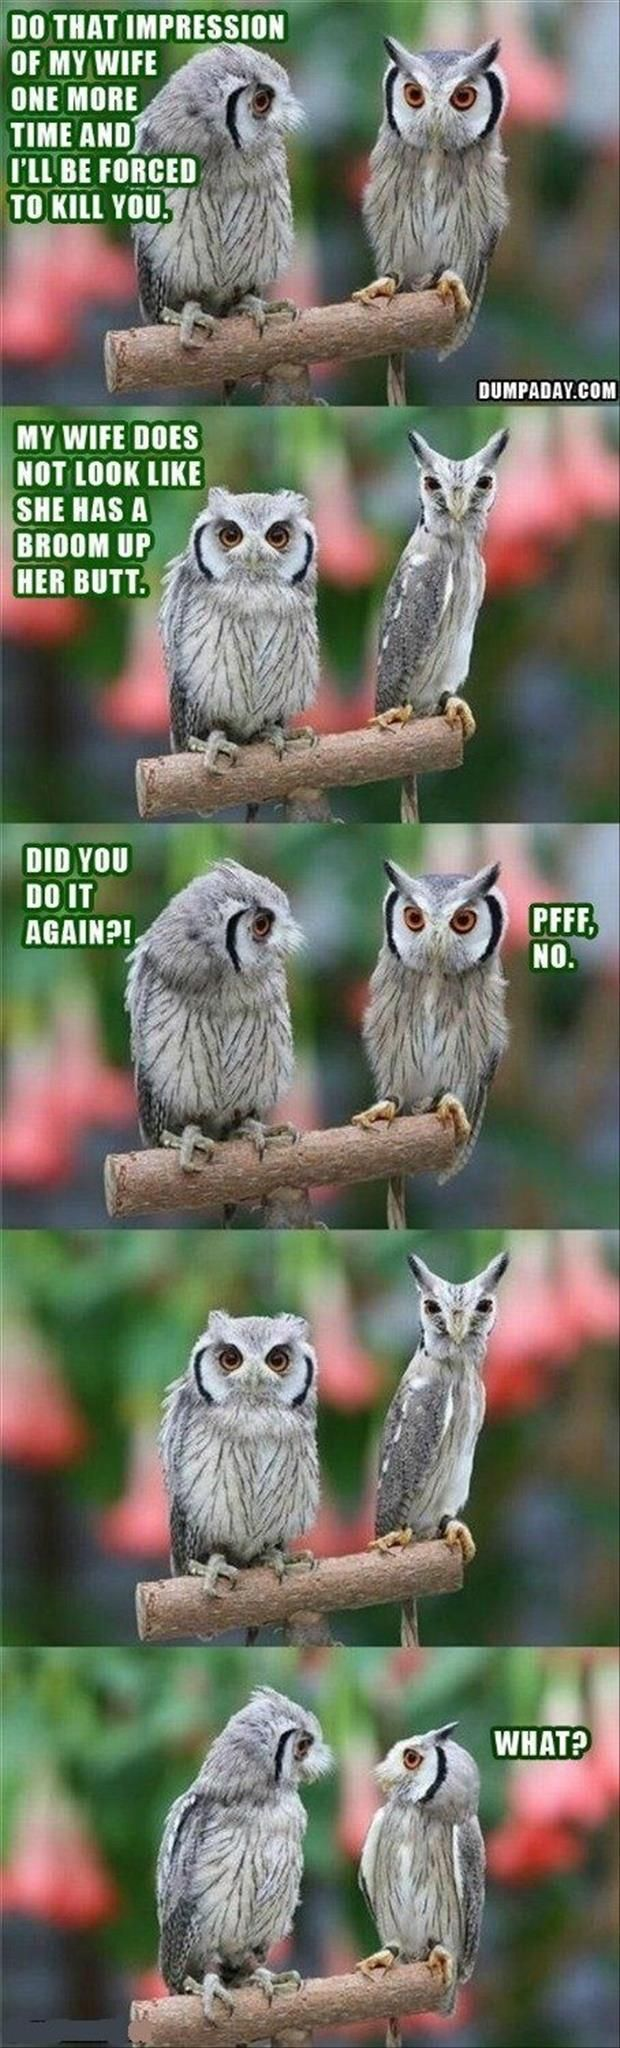 Funny Animal Pictures - 35 Pics